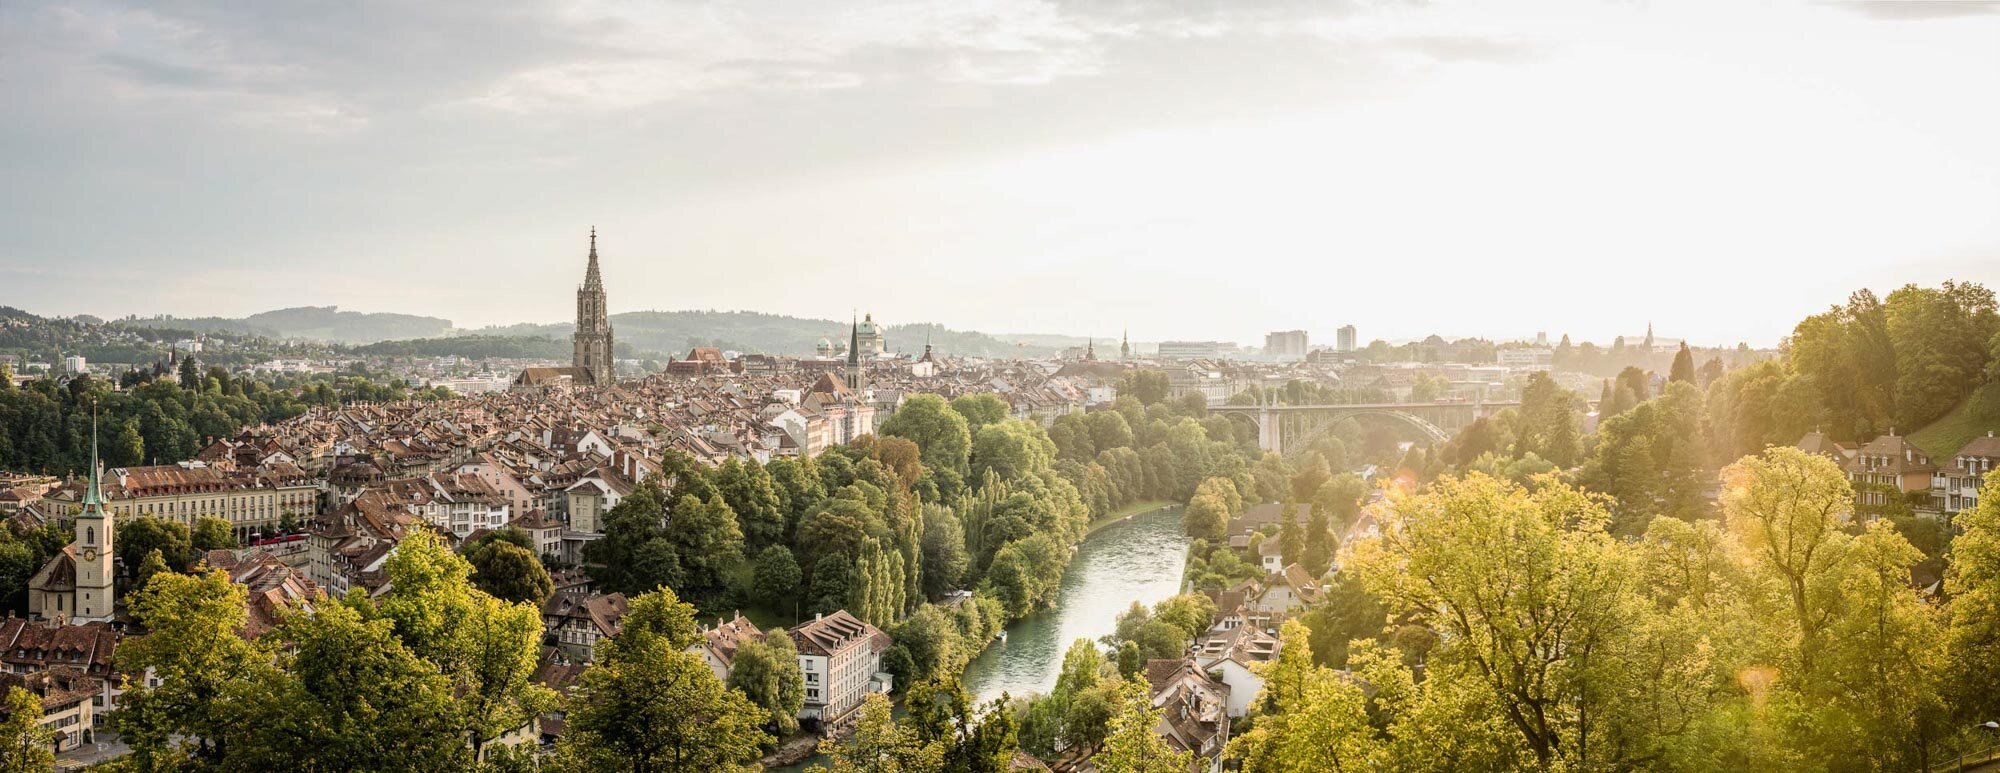 Bern. Panorama of the rose garden with view of cathedral, federal palace, Aar and Dalmazi bridge. Copyright by: Switzerland Tourism